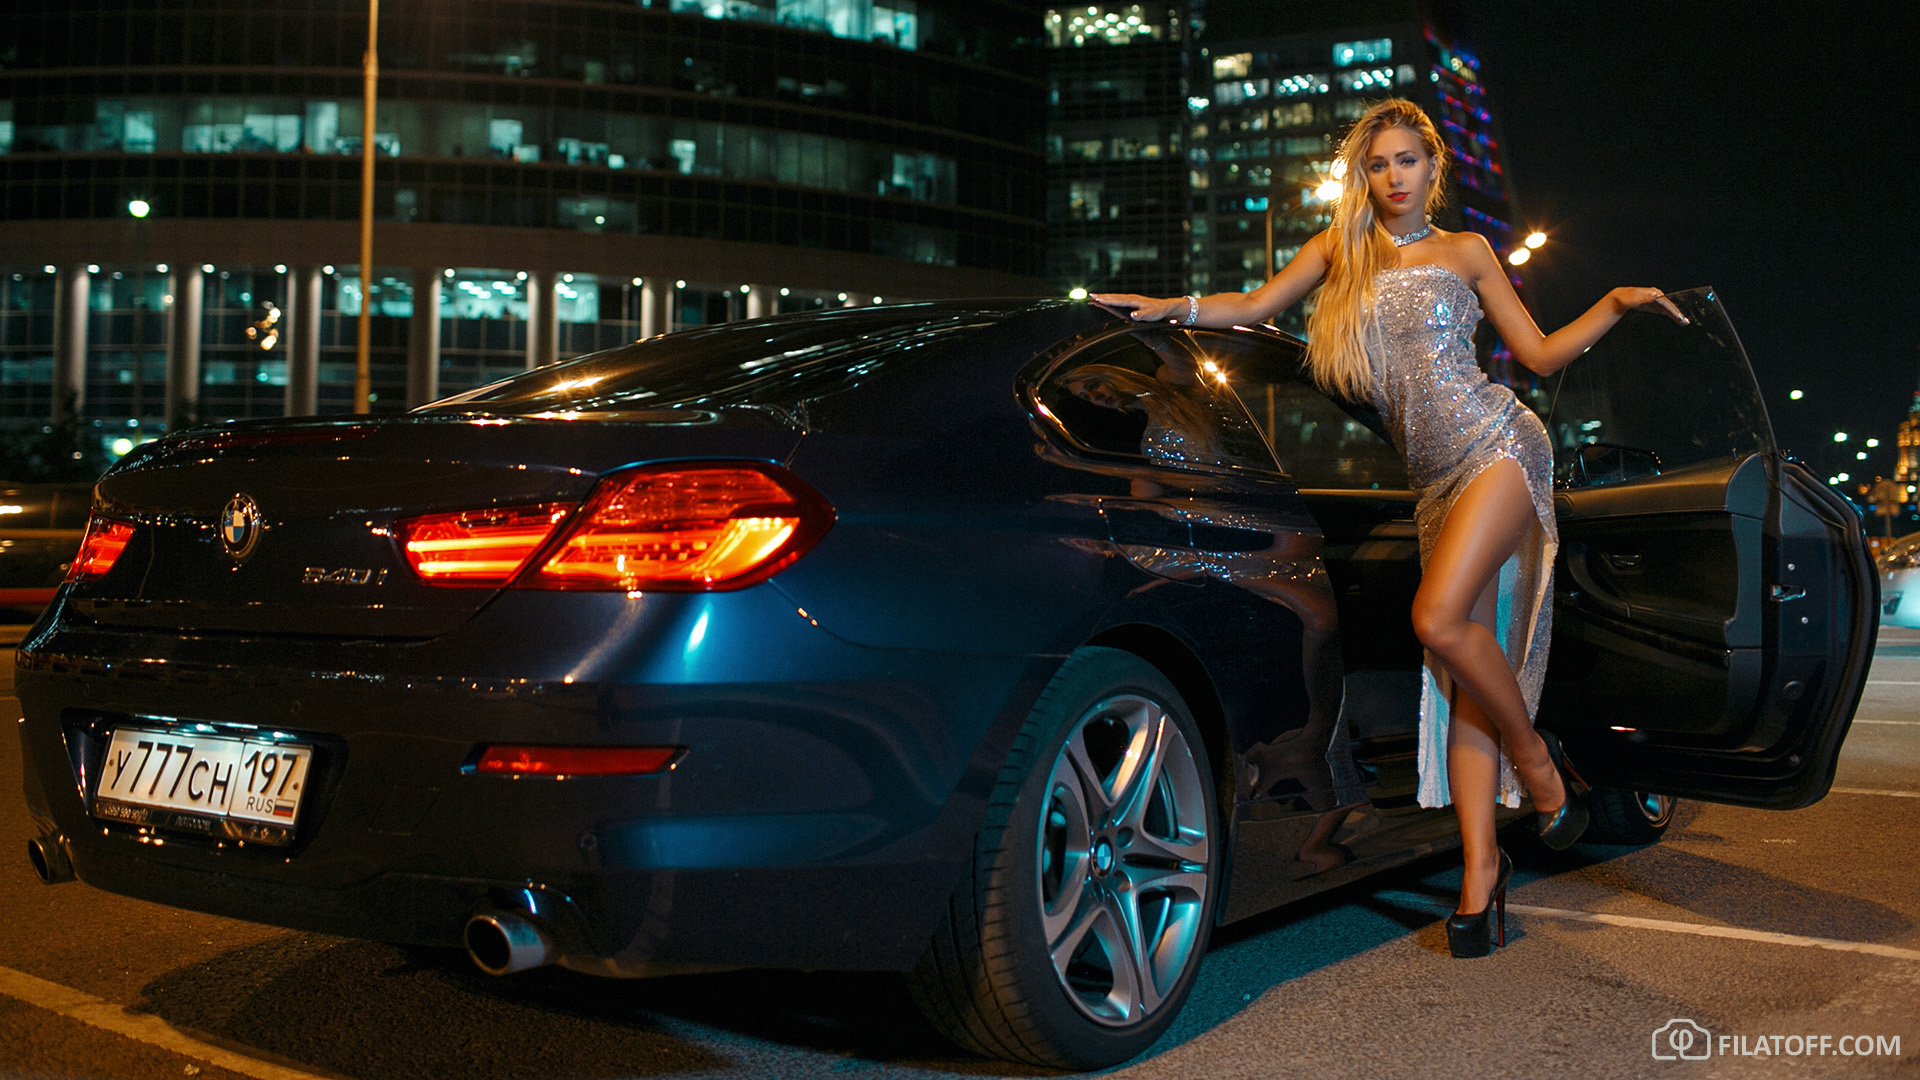 Blonde stunner in cocktail dress and BMW 640i